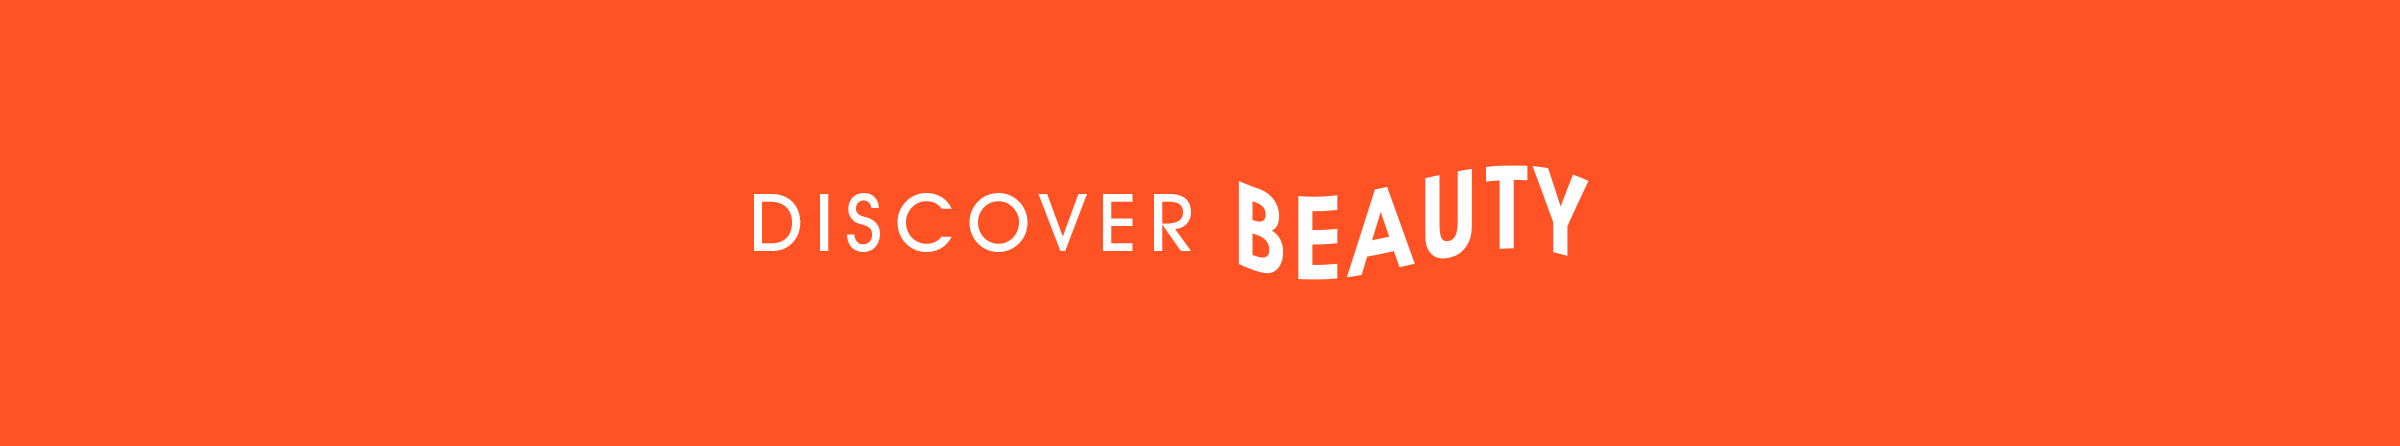 discover-beauty-banner